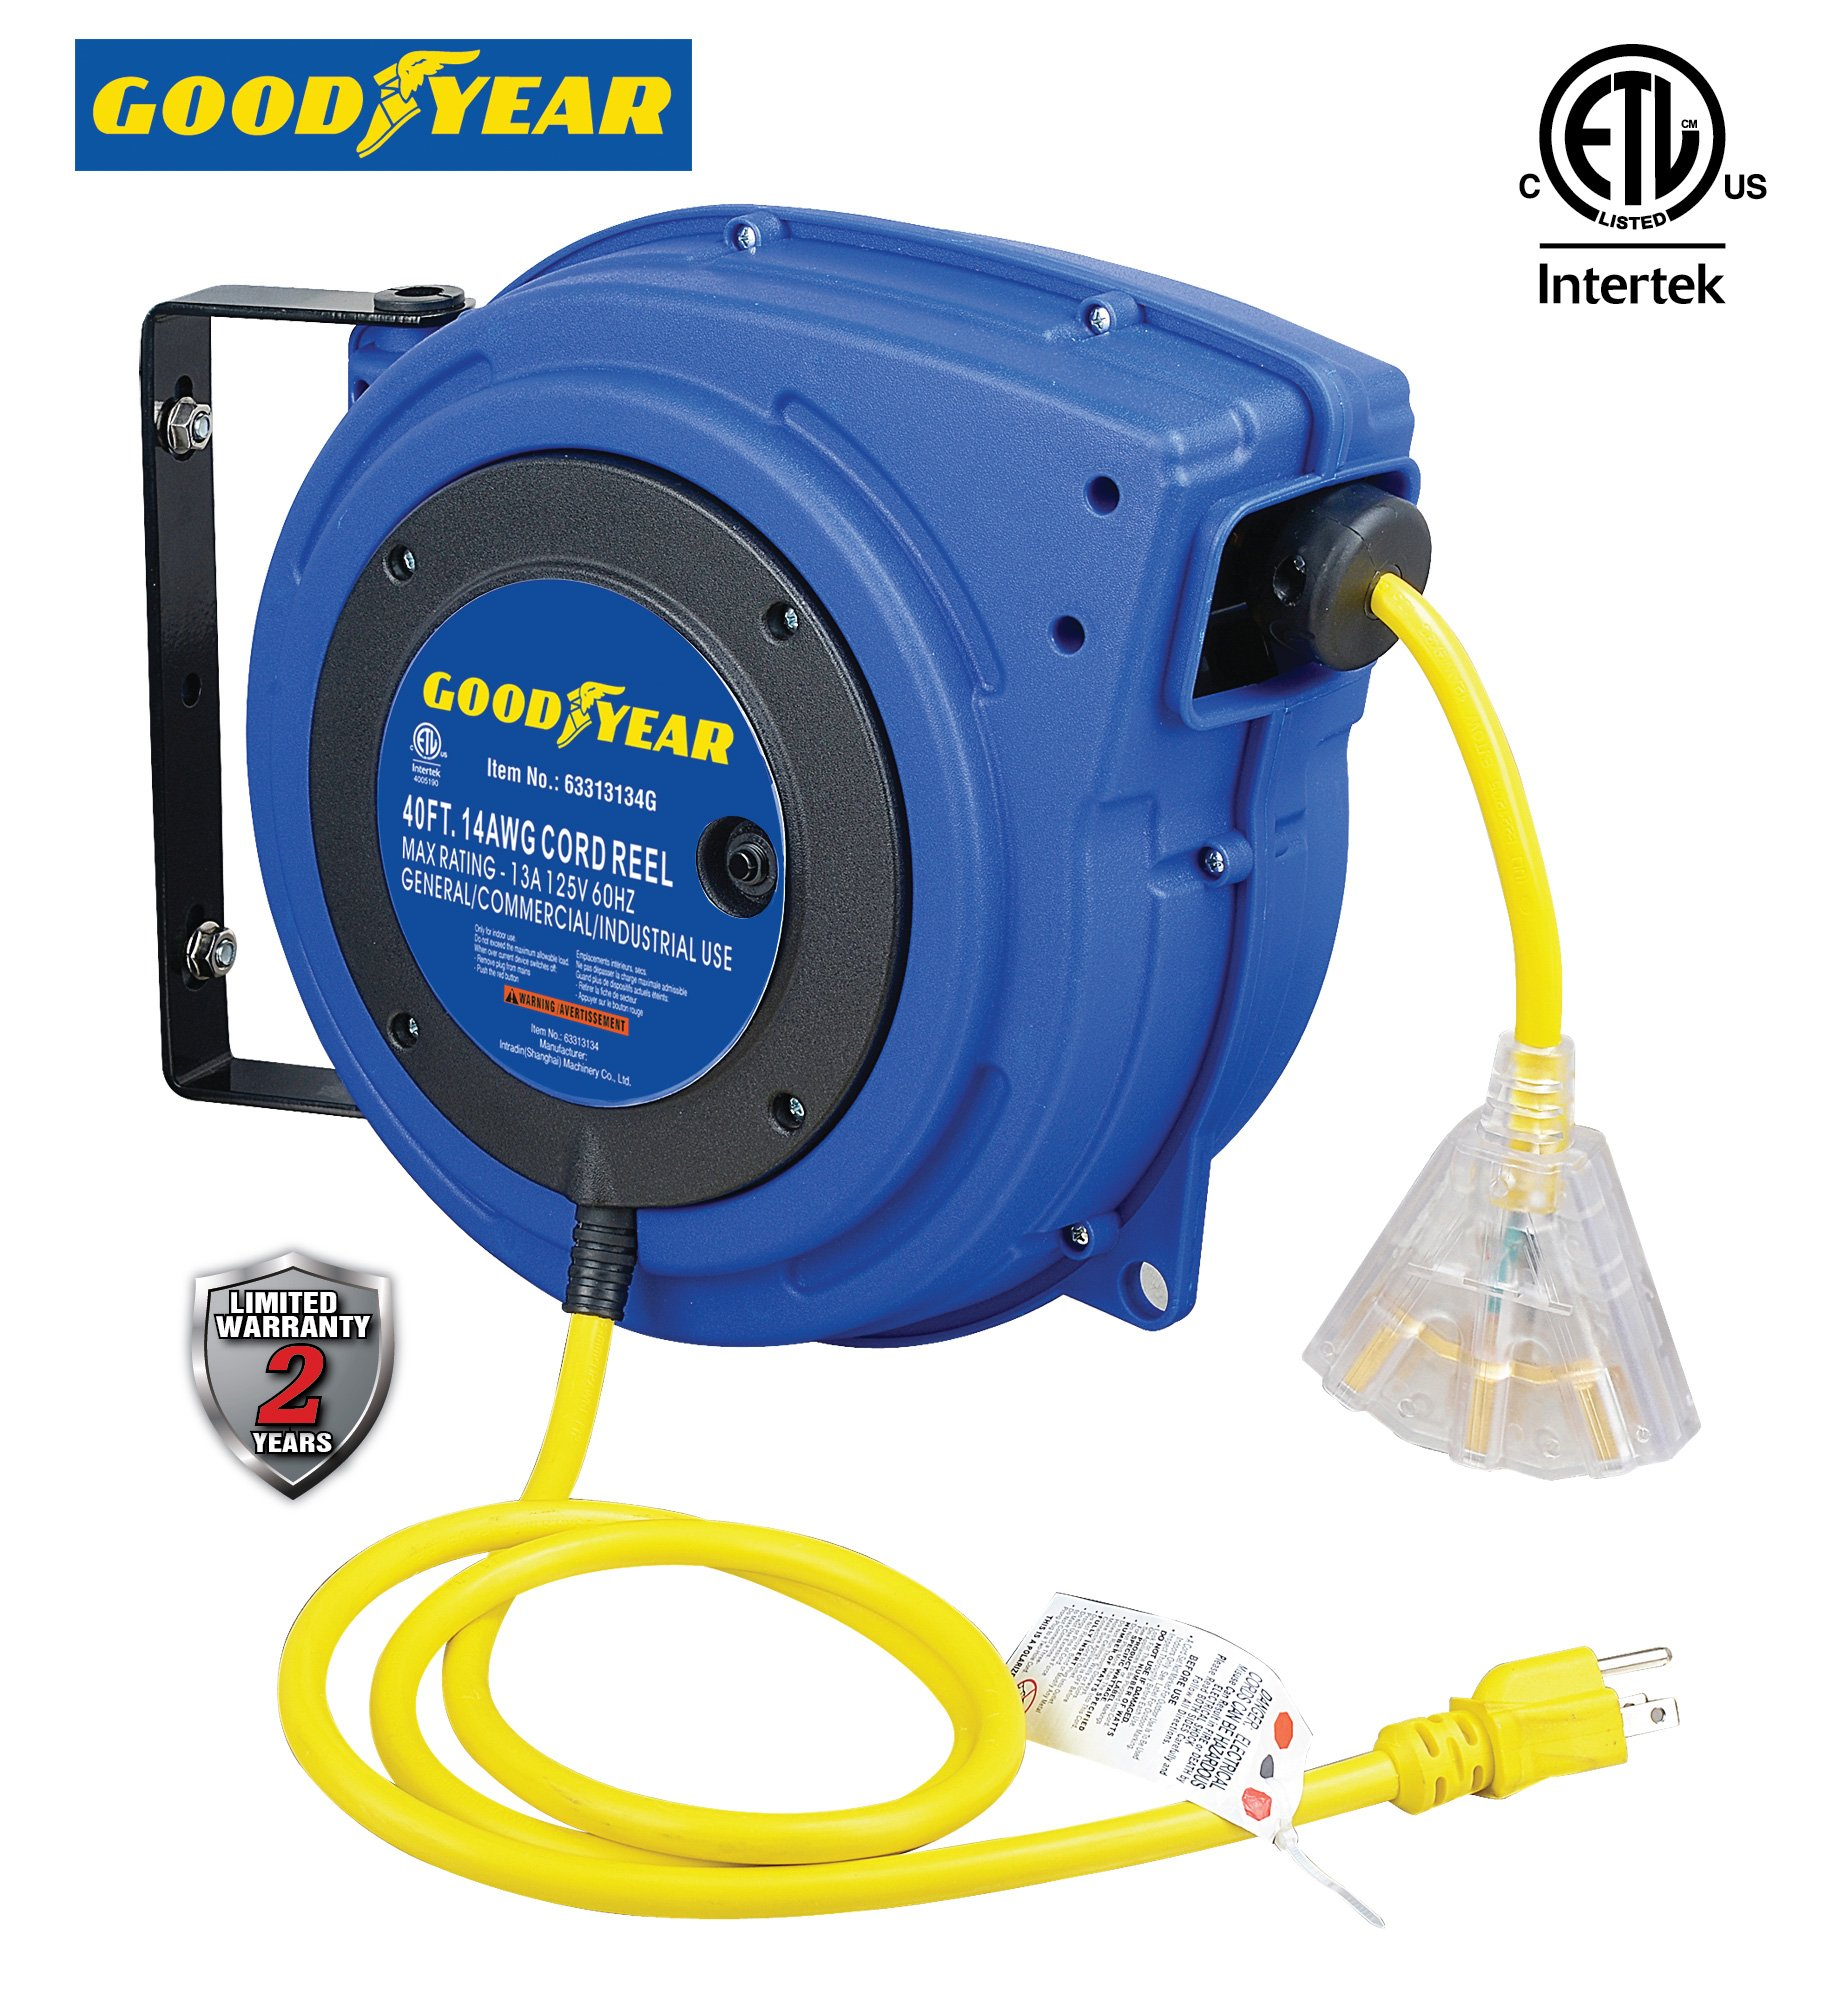 Goodyear Extension Cord Reel, 40 ft., 14AWG/3C SJTOW, Triple Tap with LED Lighted Connector, Heavy Duty by Goodyear